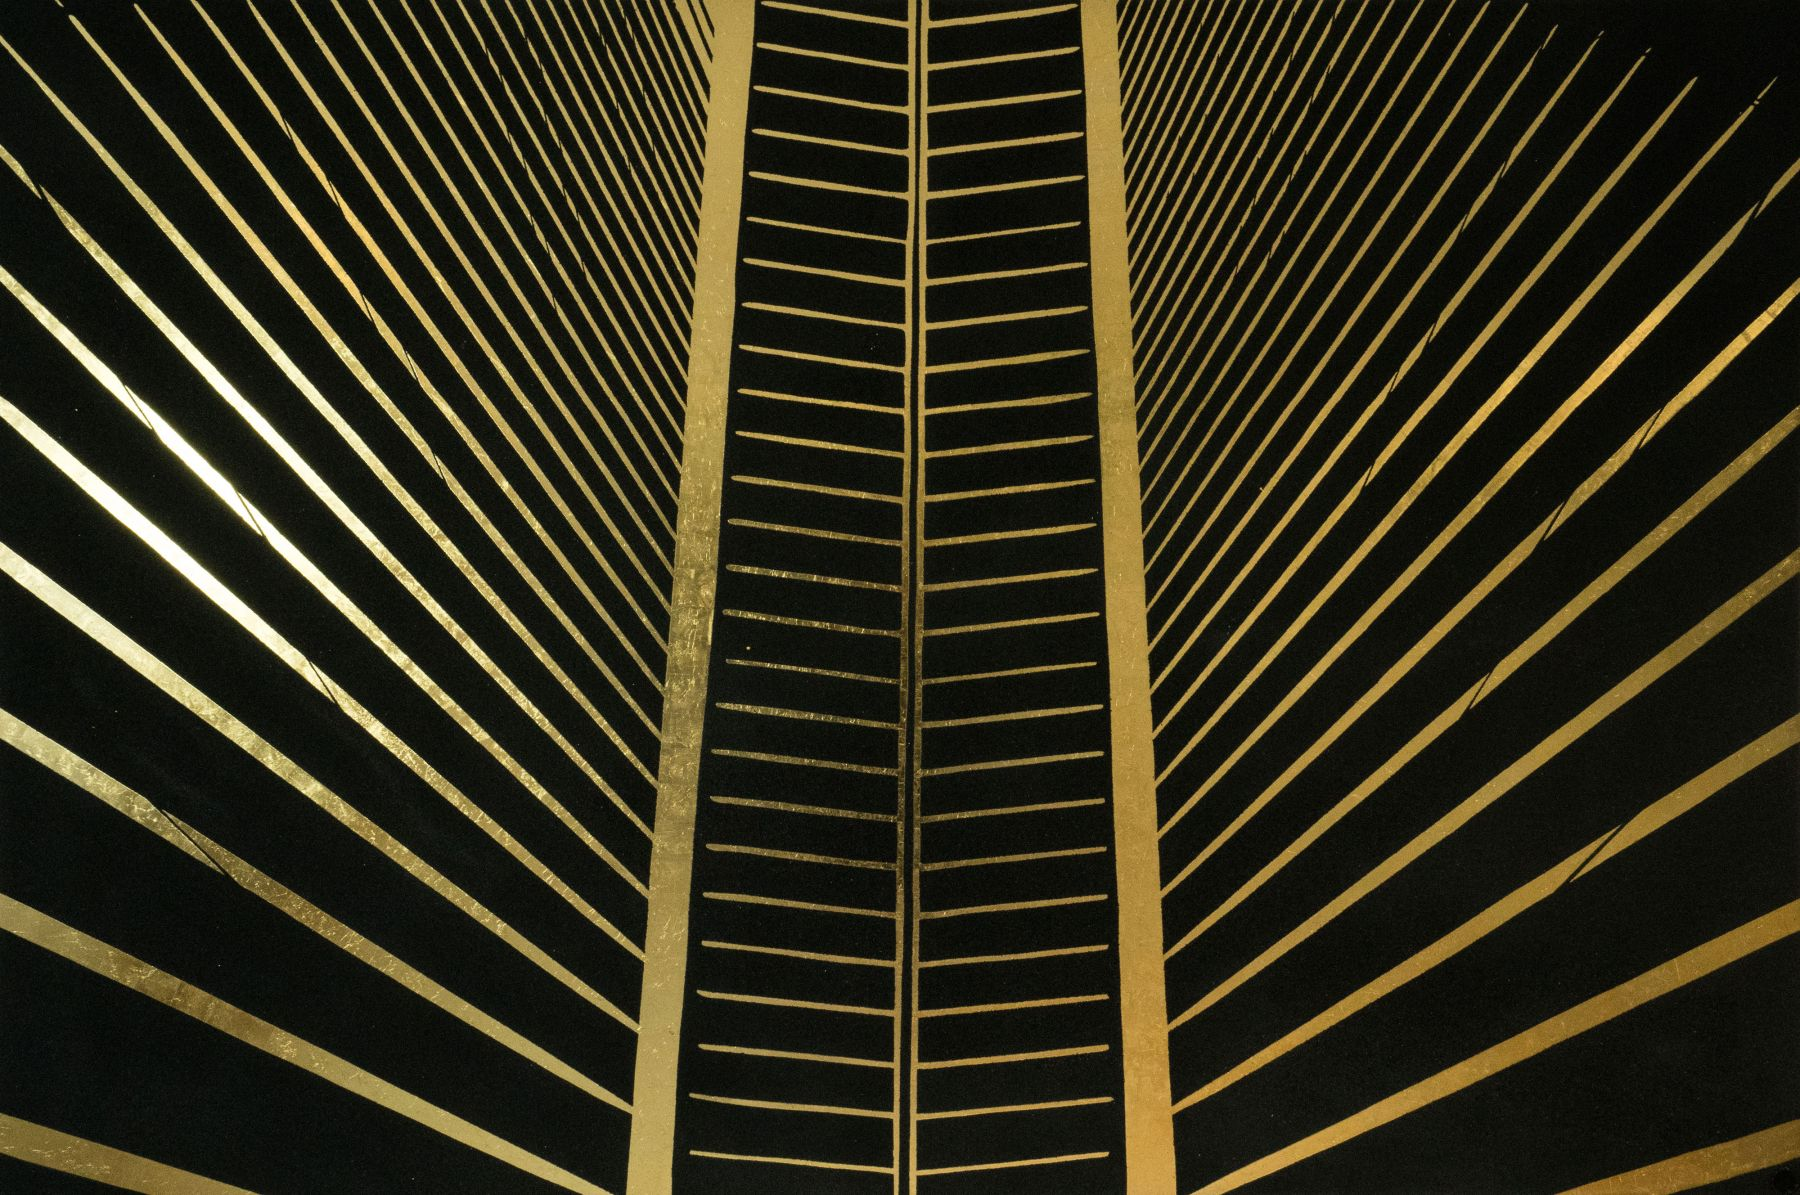 WTC Cathedral Black by Tim Bengel at Hg Contemporary art gallery